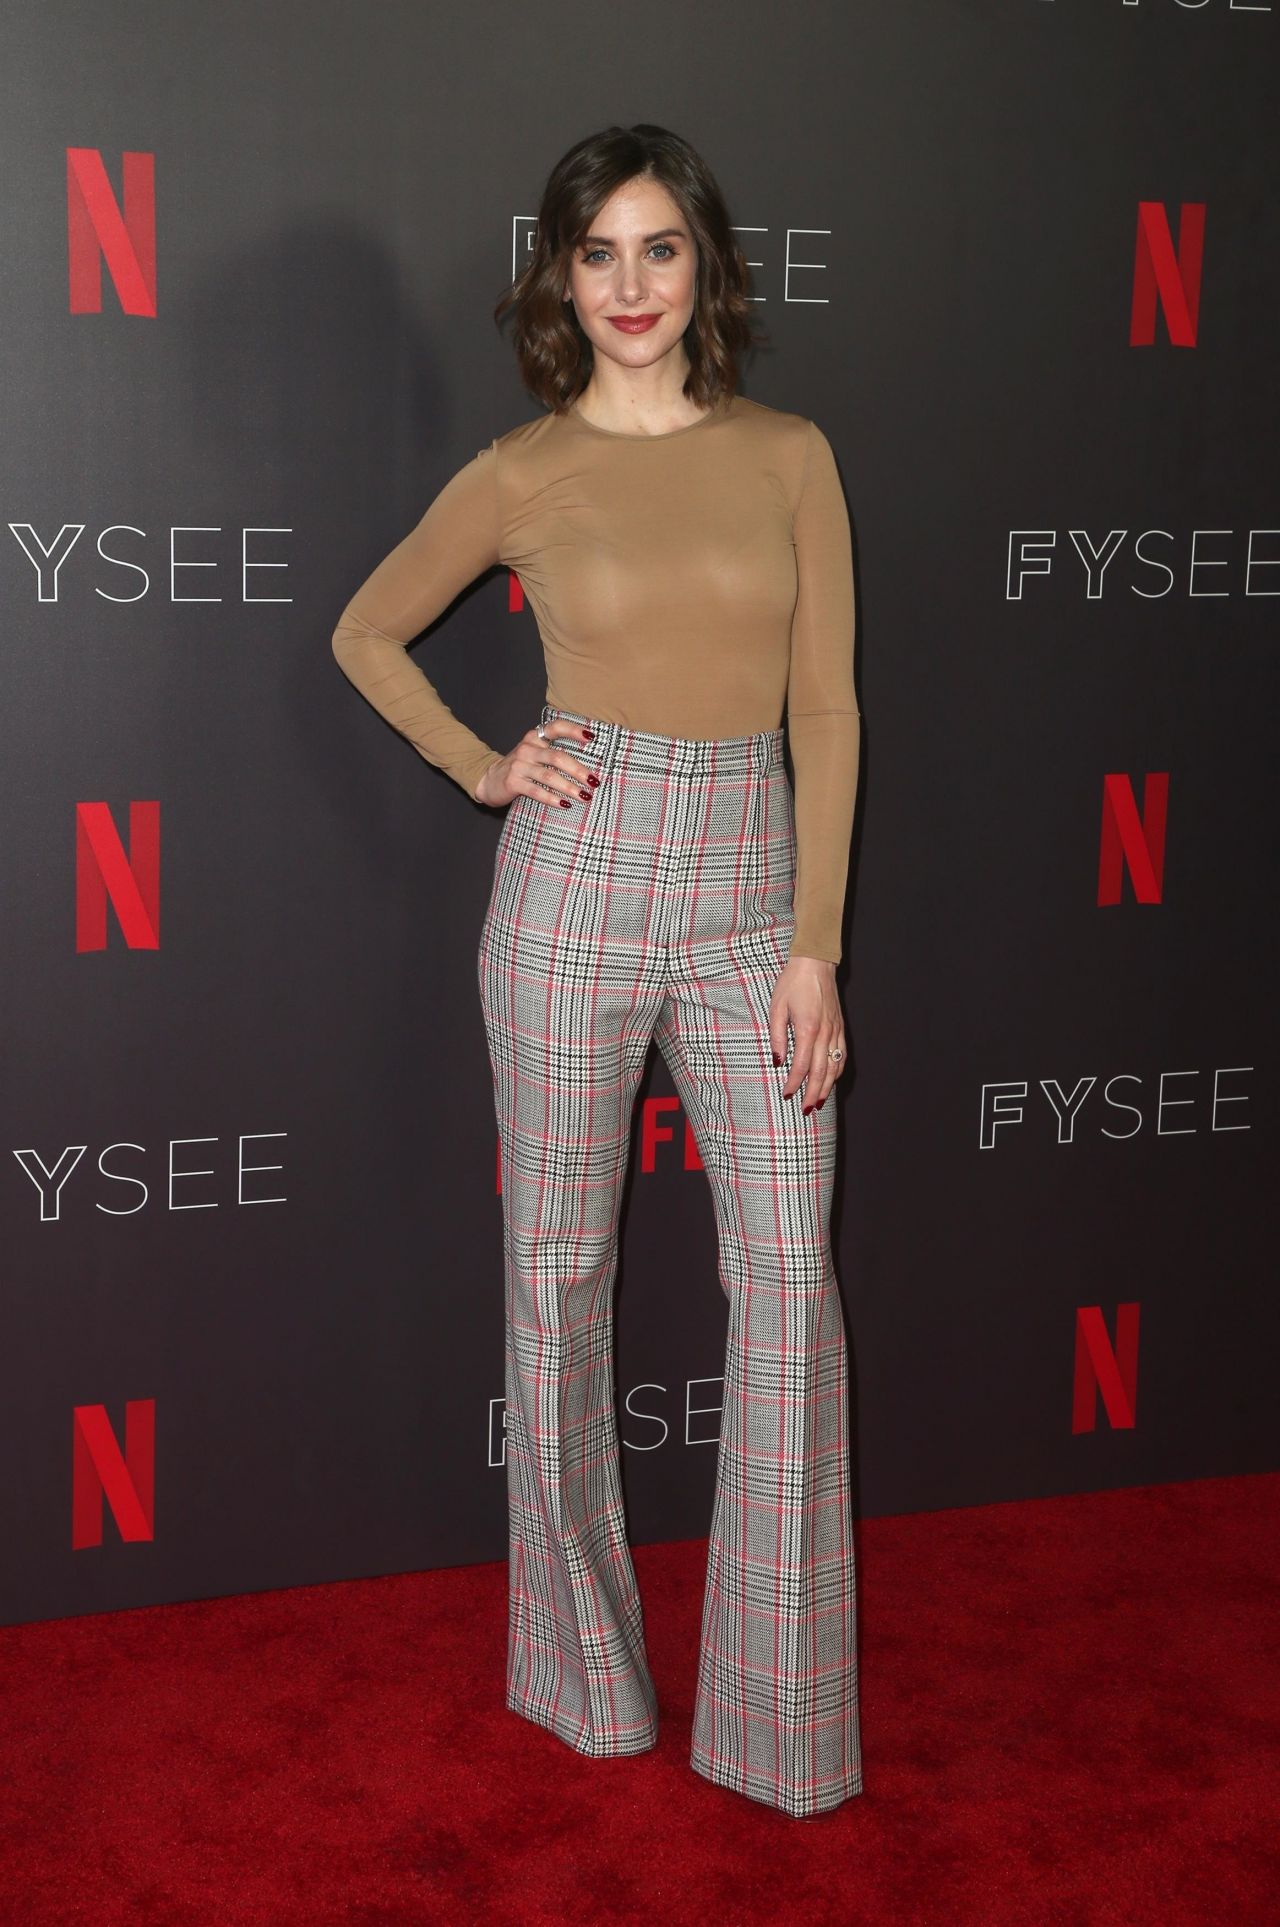 http://celebmafia.com/wp-content/uploads/2018/05/alison-brie-netflix-animation-panel-fysee-event-in-la-05-21-2018-11.jpg